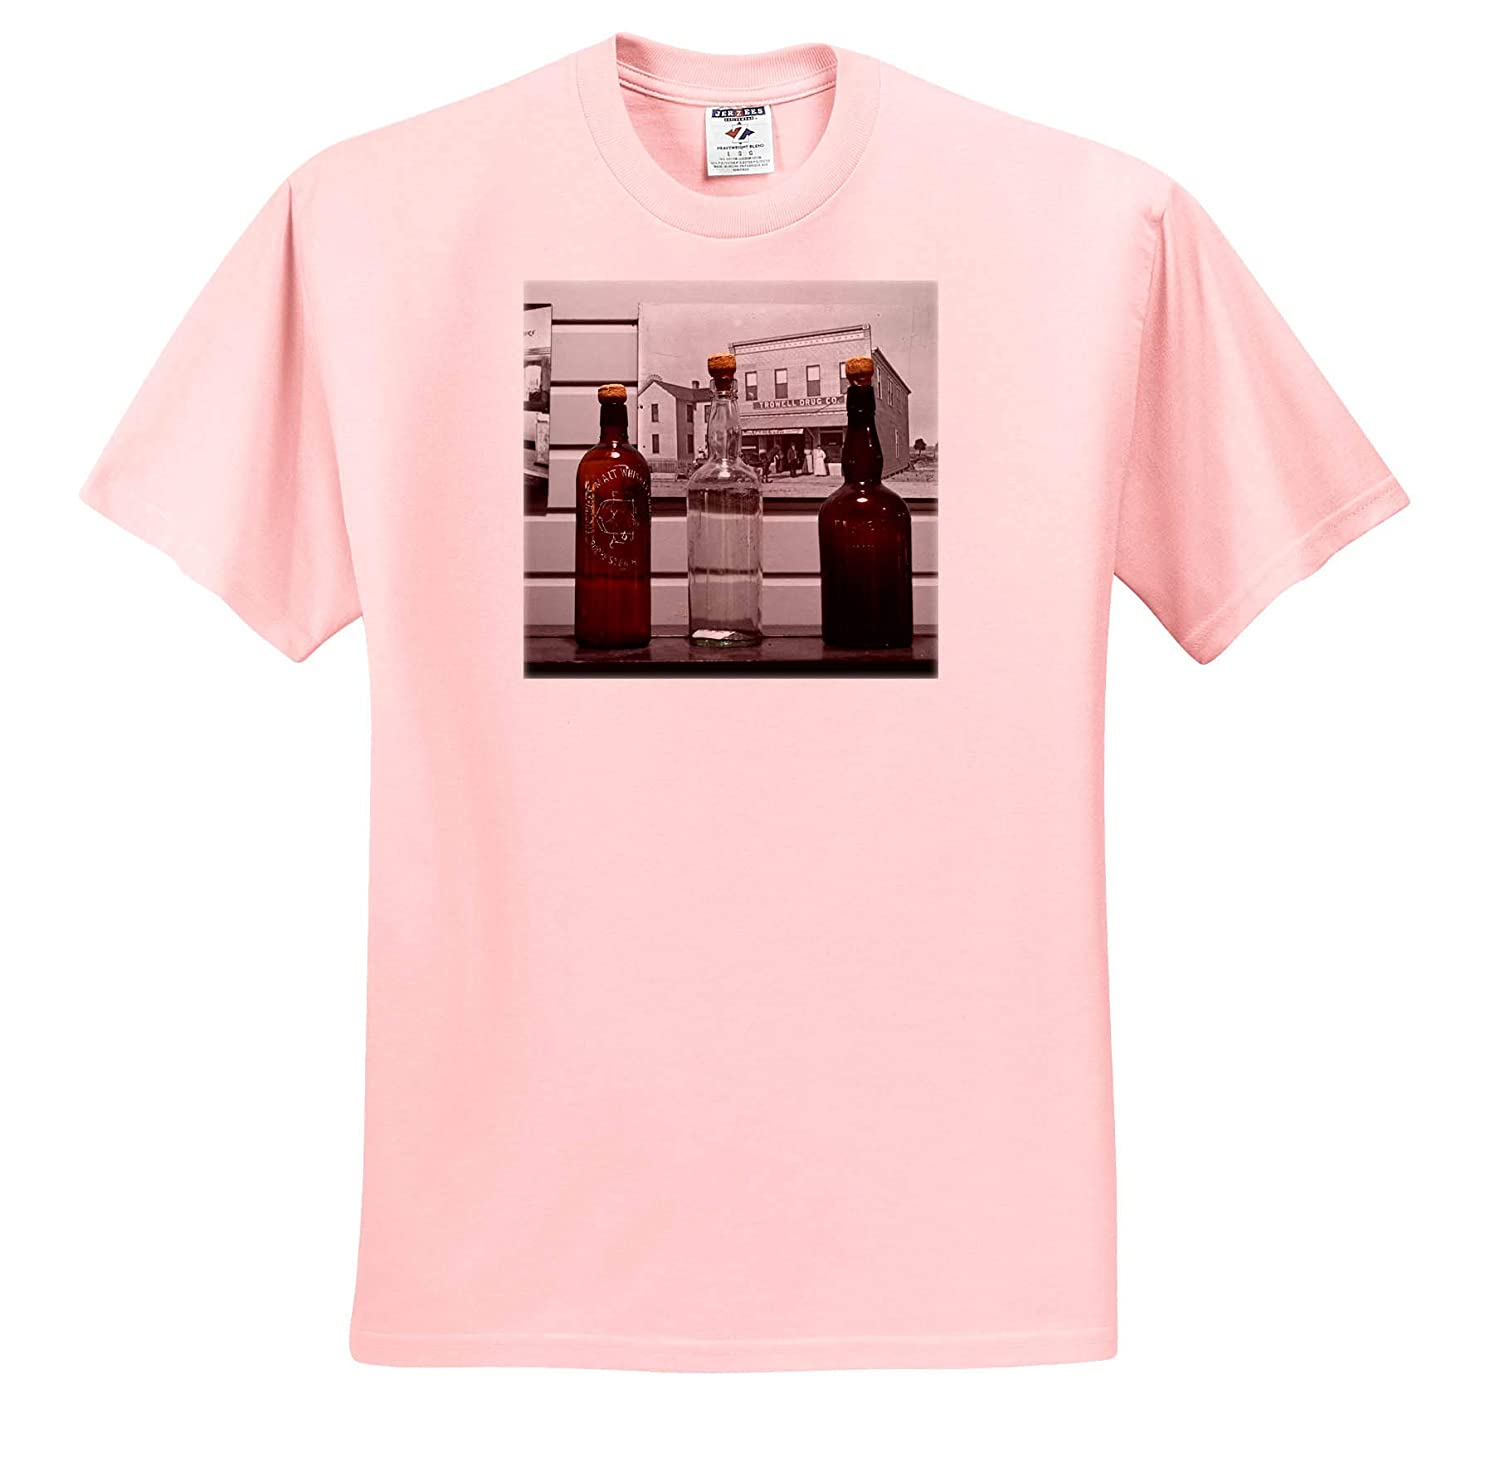 Bottles Old Fashioned Against Wall 3dRose Susans Zoo Crew Scenery T-Shirts